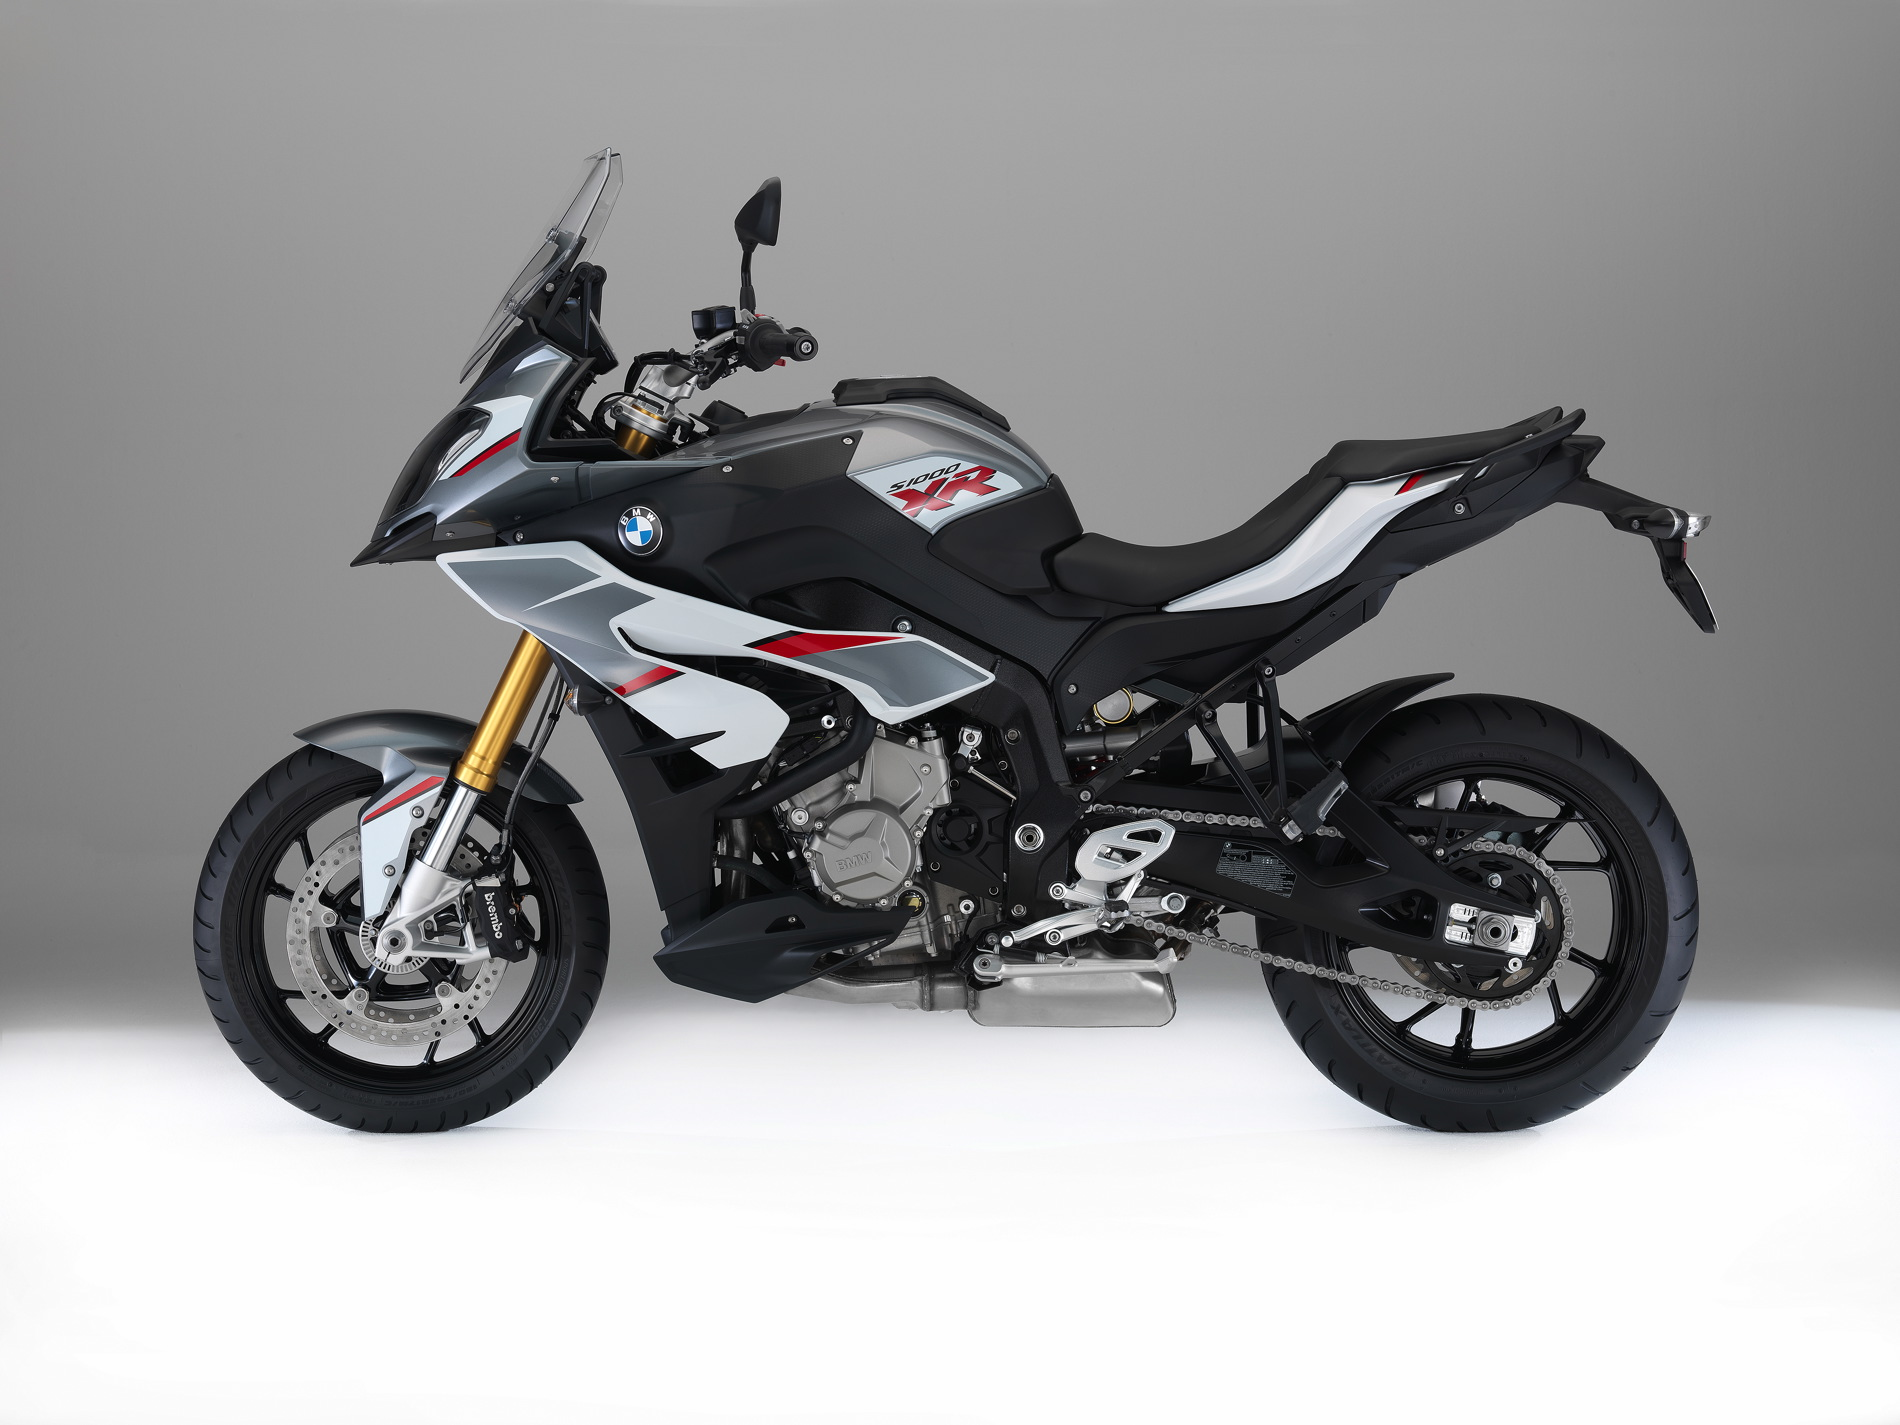 Bmw Adds New Multi Color Paint For The S 1000 Xr